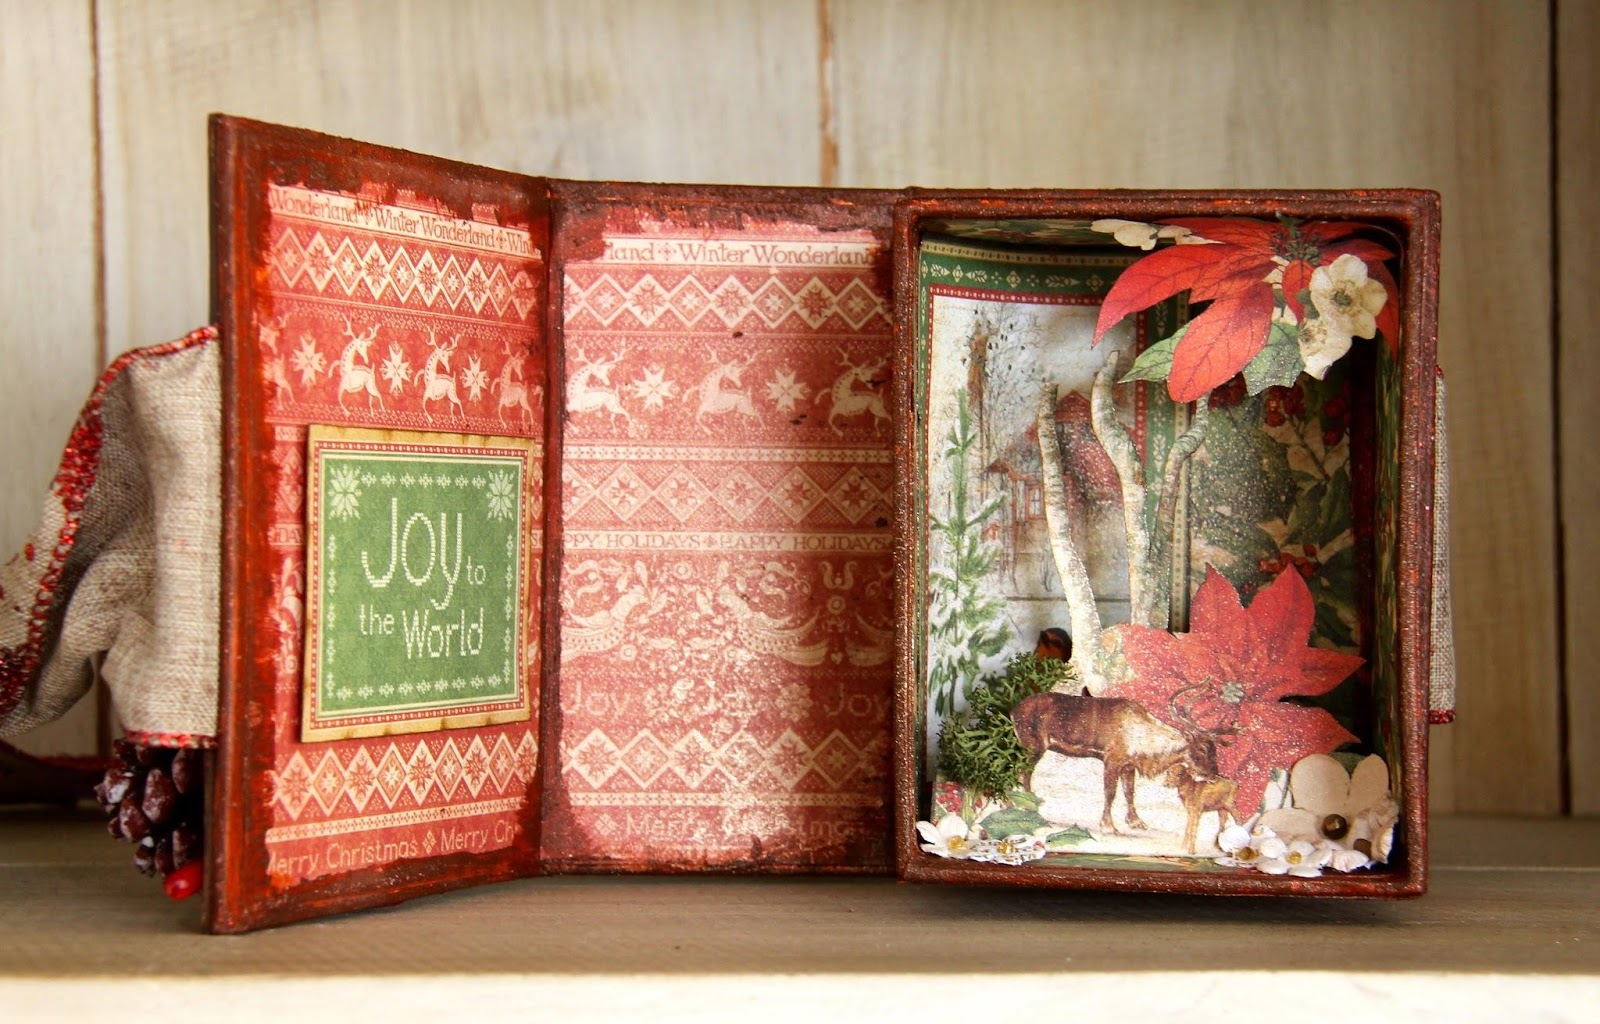 Winter Wonderland Book Box by Marina Blaukitchen Product by Graphic 45 photo 4.jpg